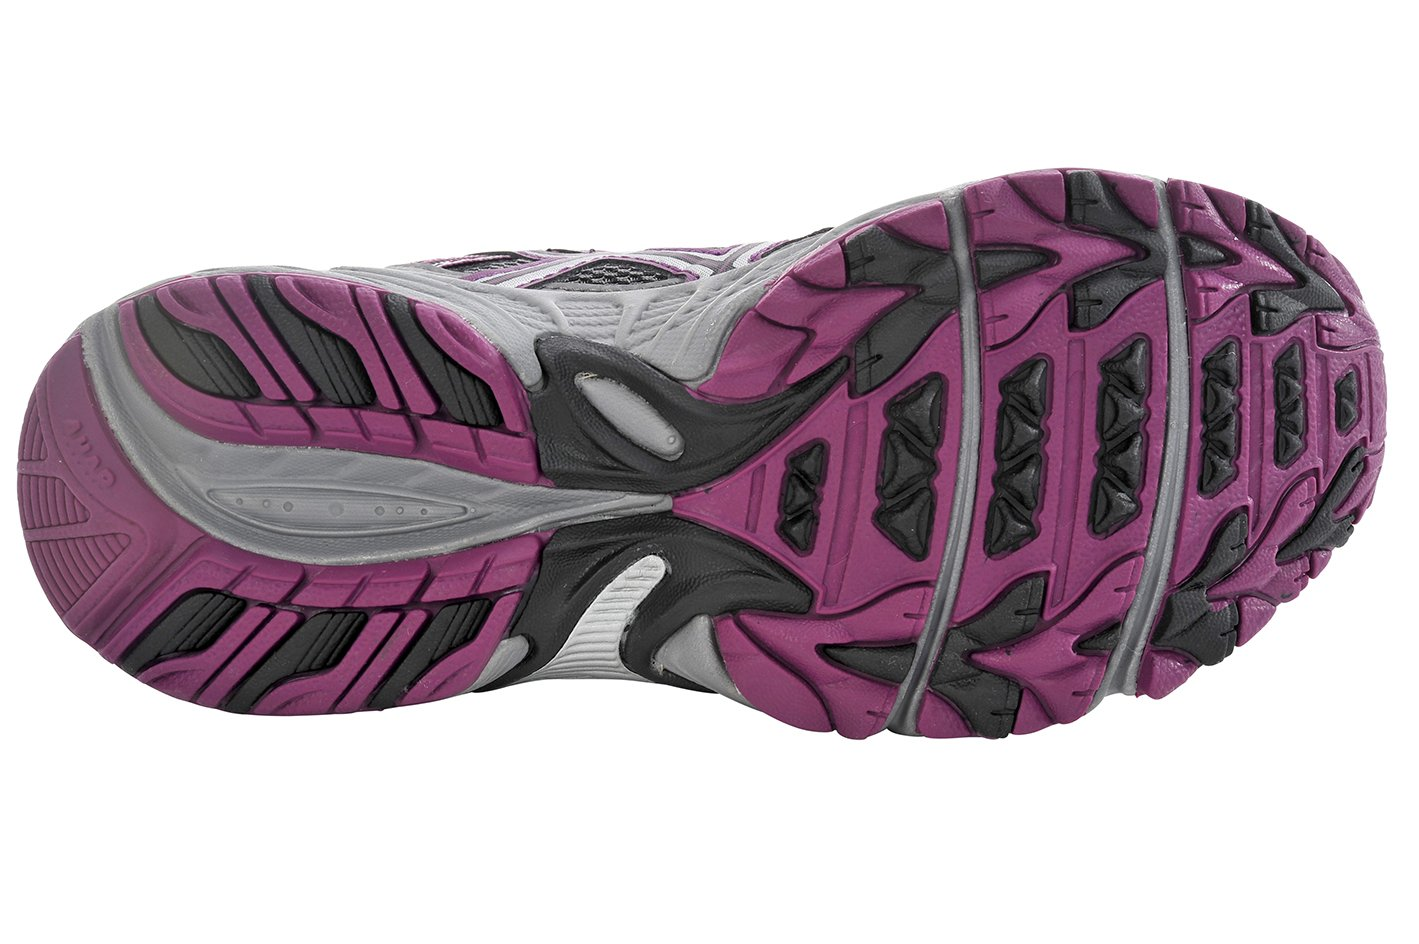 ASICS Women's Gel-Venture 5 Trail Running Shoe, Frost Gray/Gray/Silver/Magenta, 6 M US by ASICS (Image #7)